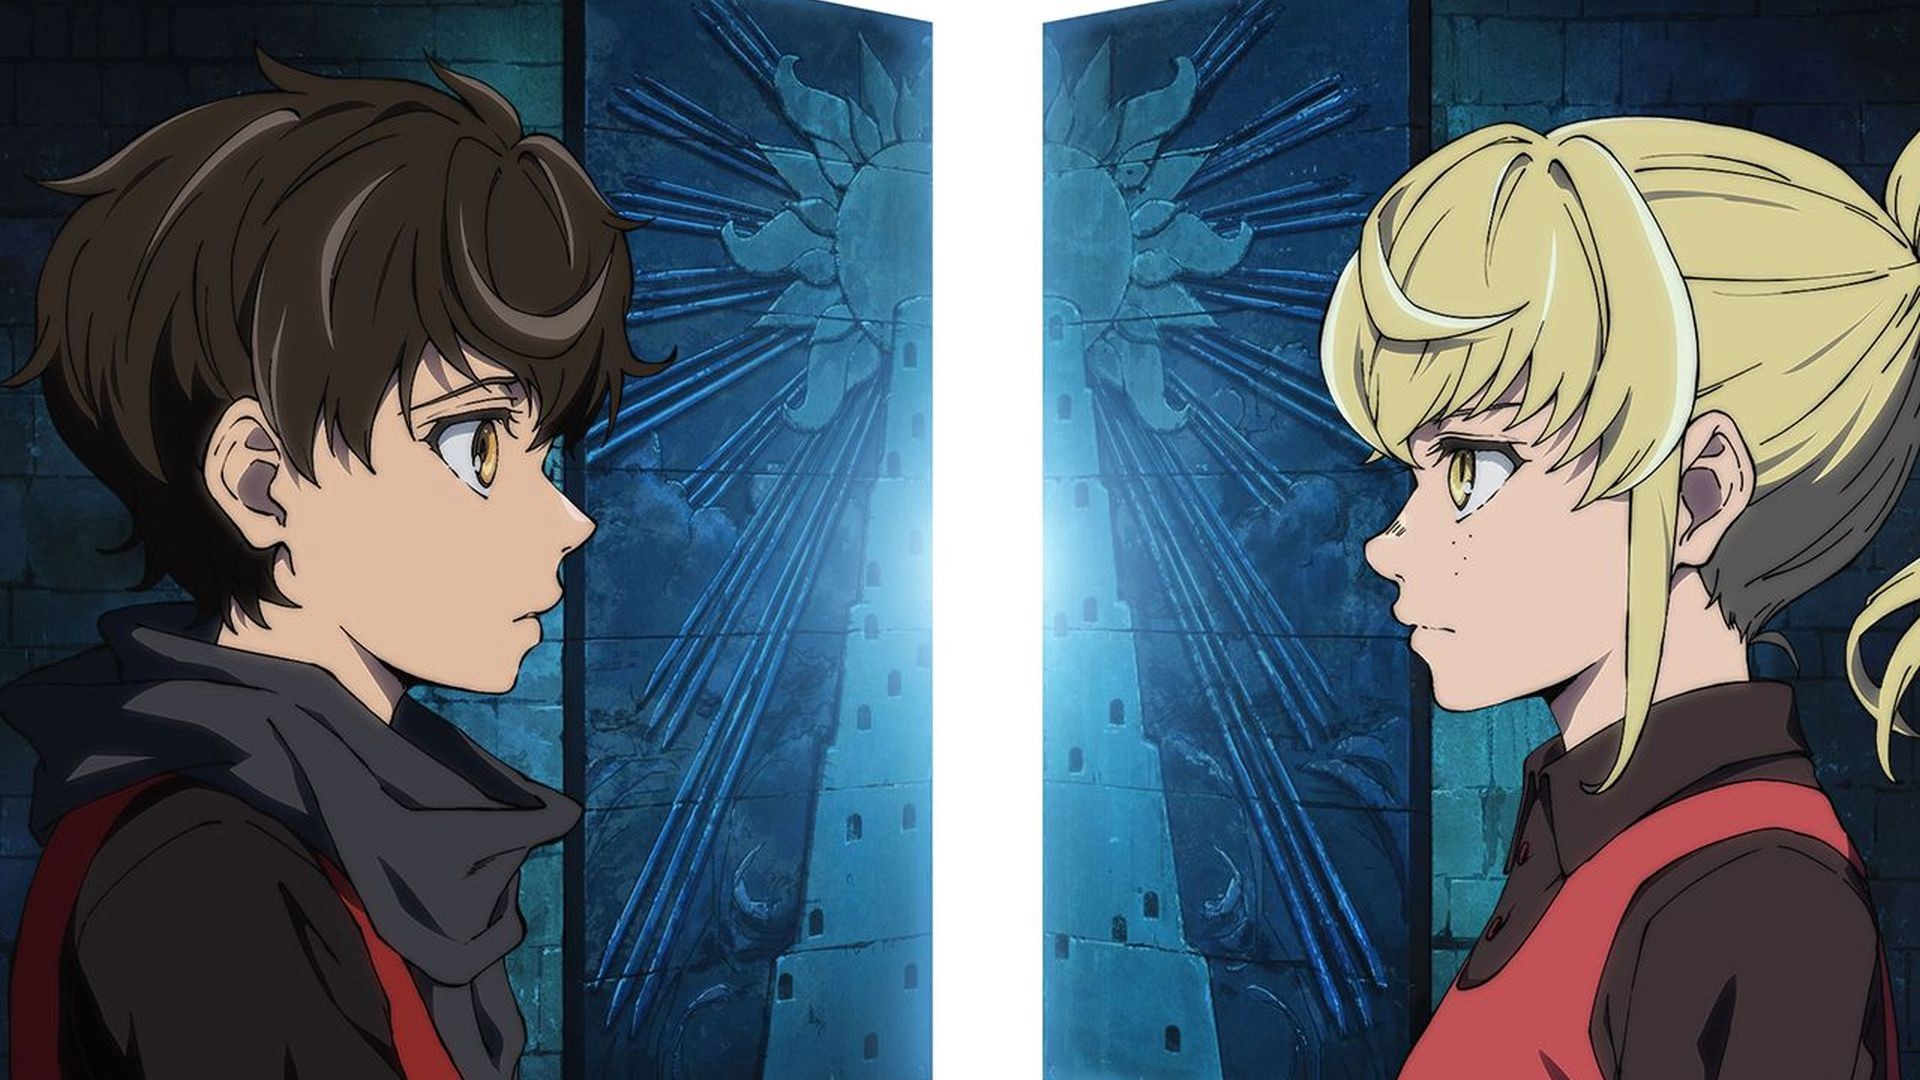 Tower of God S1 Episode 1 [ENG SUB] Full Anime 2020